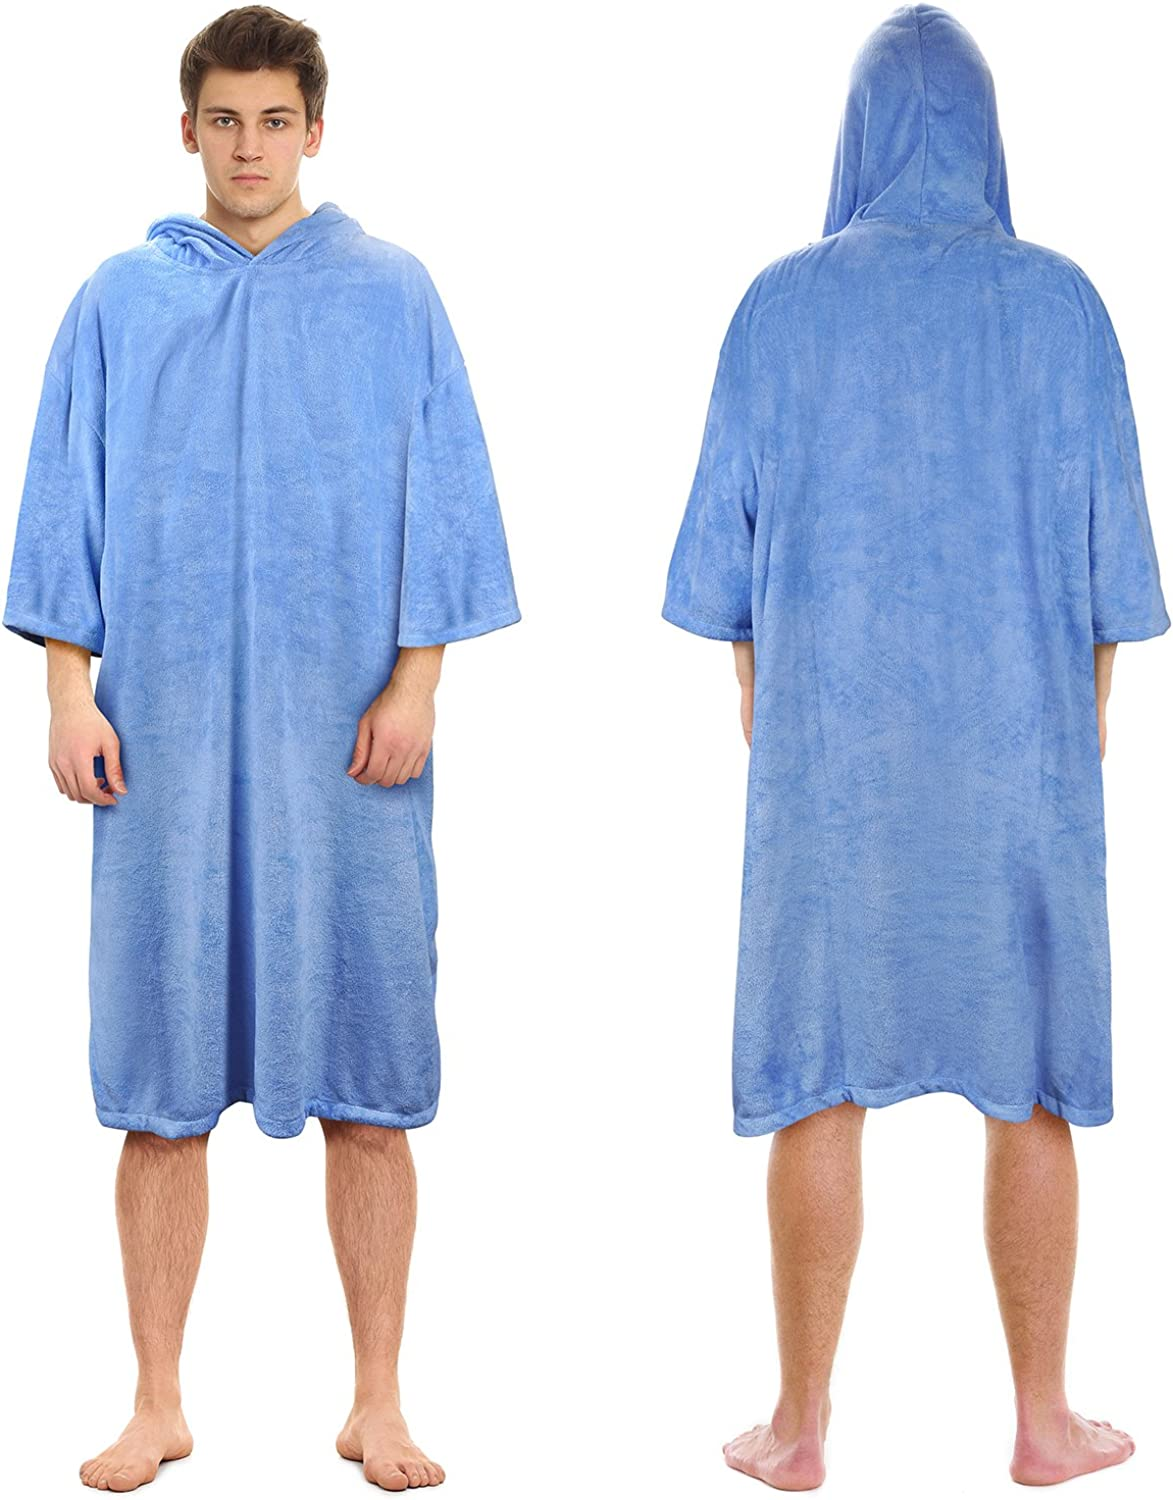 Surf Poncho Towel with Hood for Adults Women Men, Microfiber Beach Poncho Robe for Swimwear Bathing Suit Wetsuit Changing Out